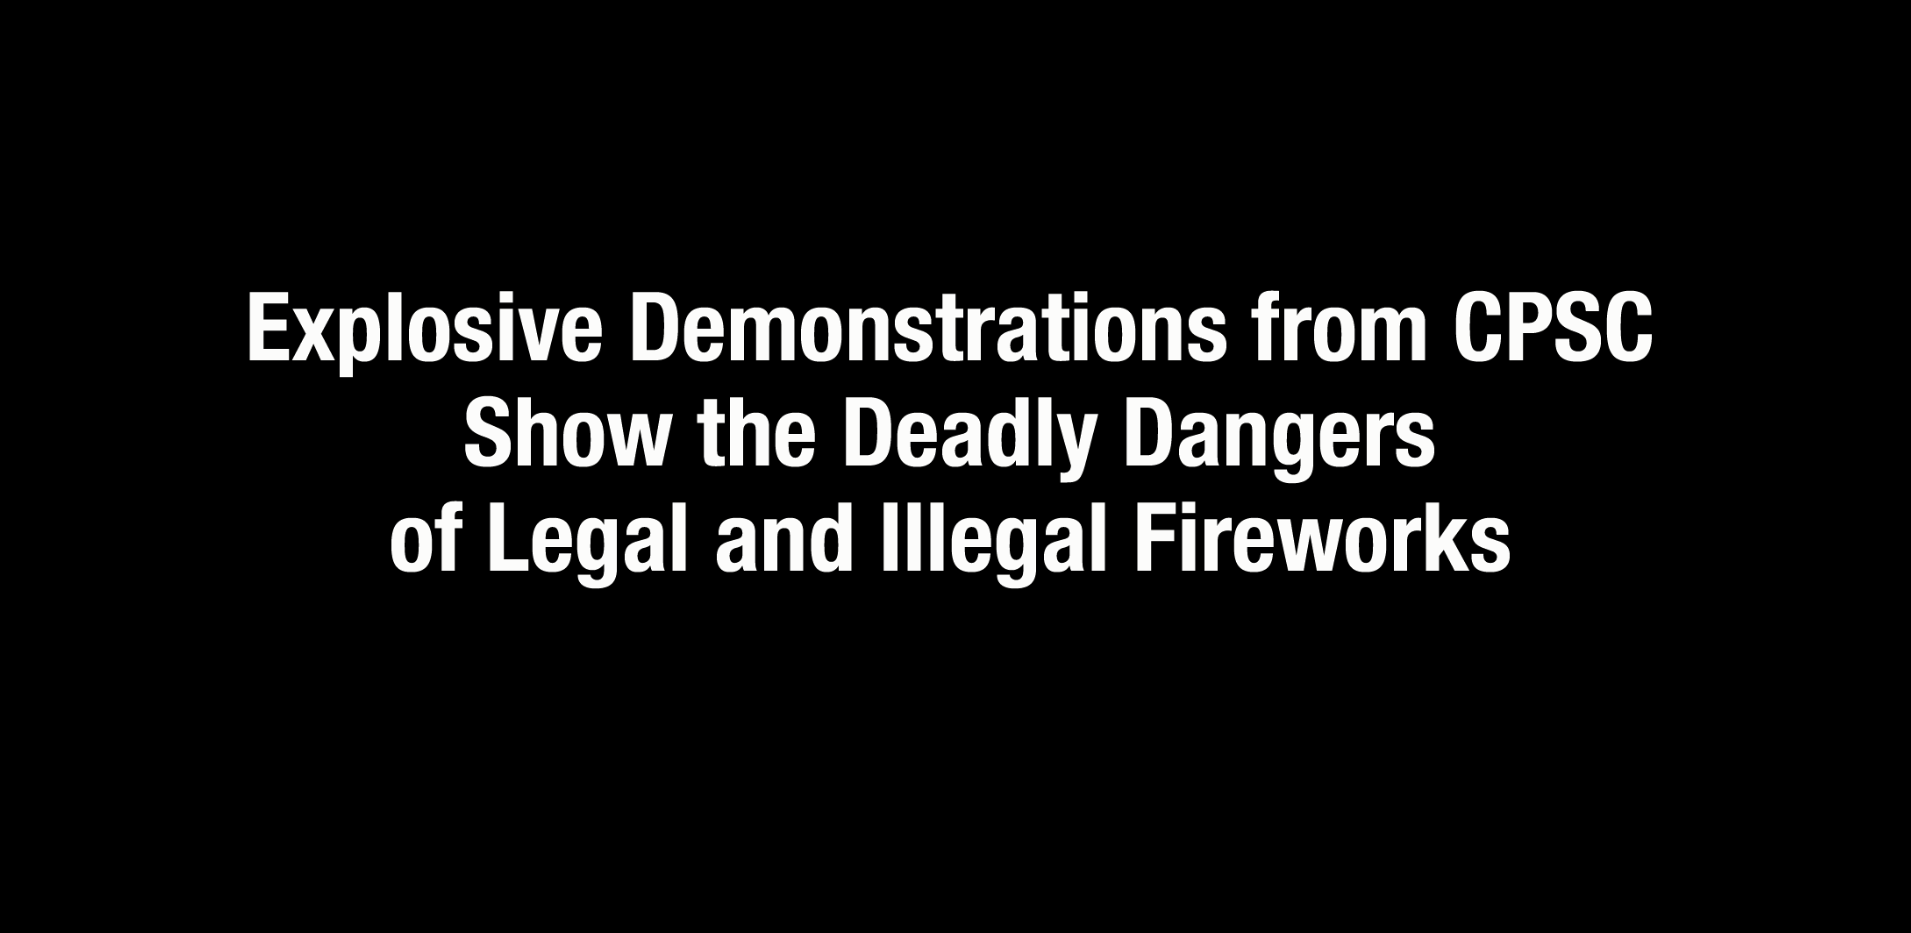 CPSC Fireworks Safety Demo b-roll